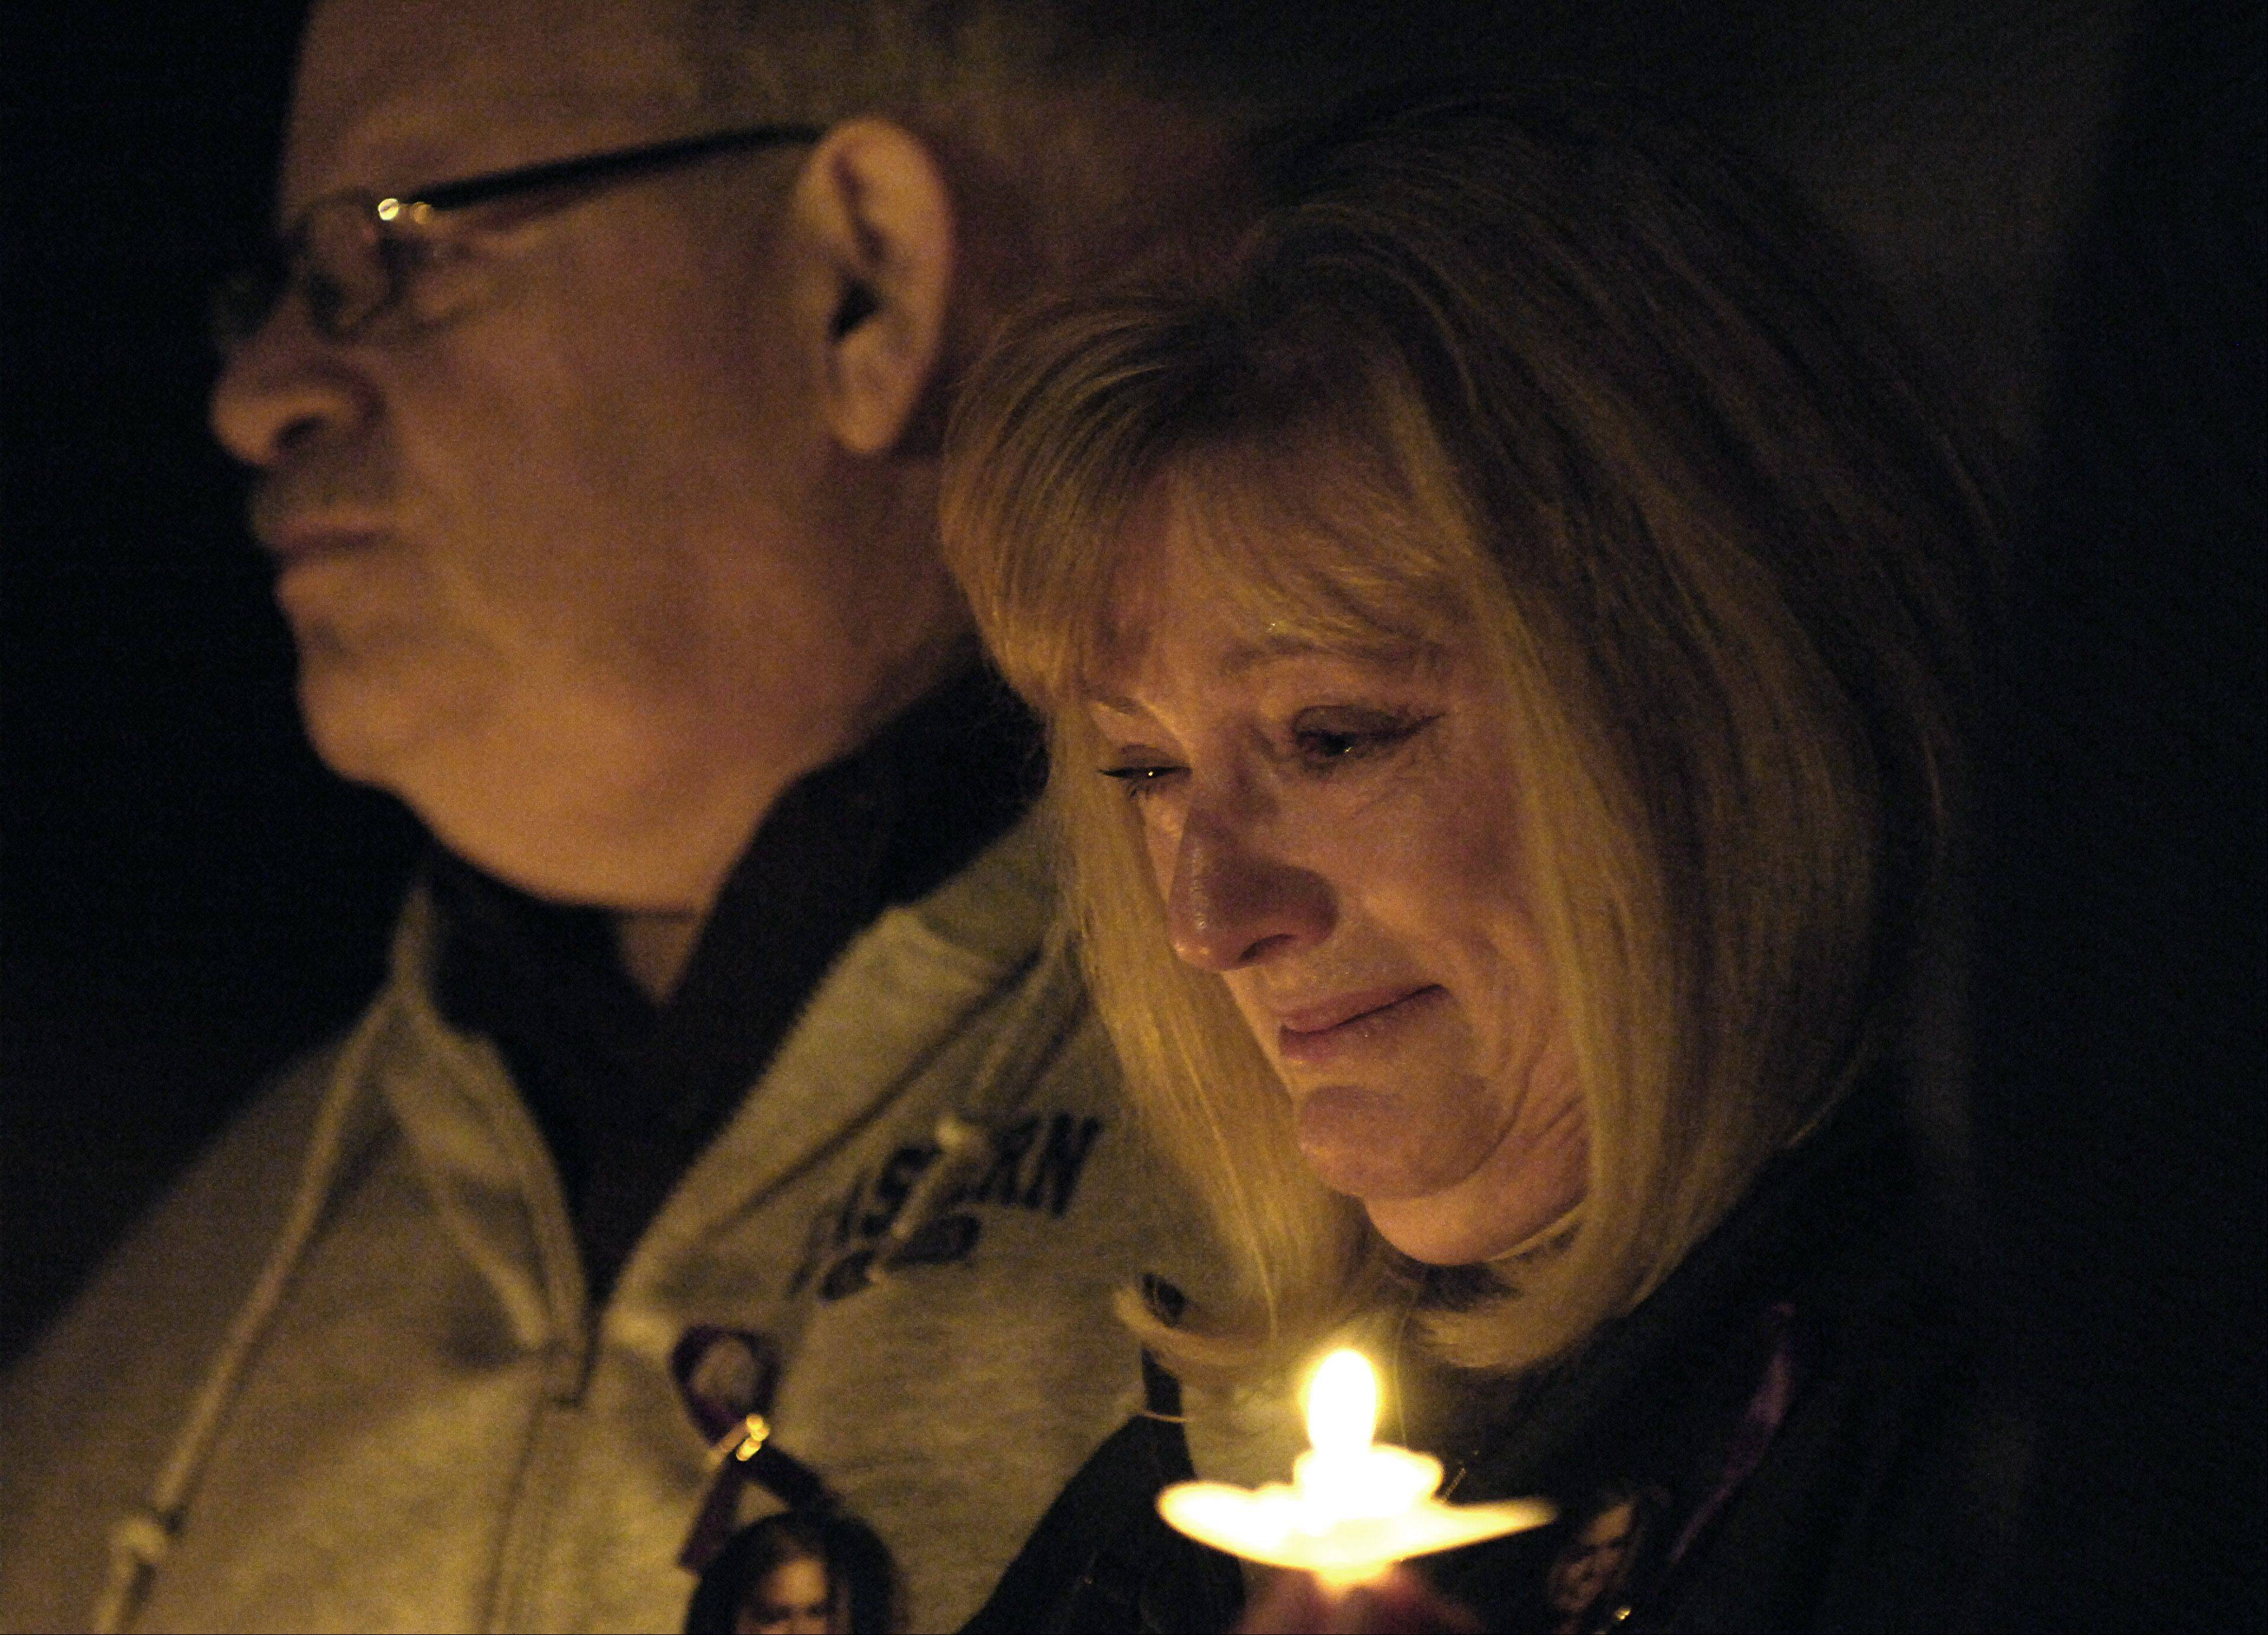 Patricia Rosenberg, with husband Michael, fights back tears while a song is played for her late daughter, Andrea Will, during candlelight vigil in 2010 at the Peg Bond Center in Batavia. Will was murdered by her ex-boyfriend in 1998 while a student at Eastern Illinois University.